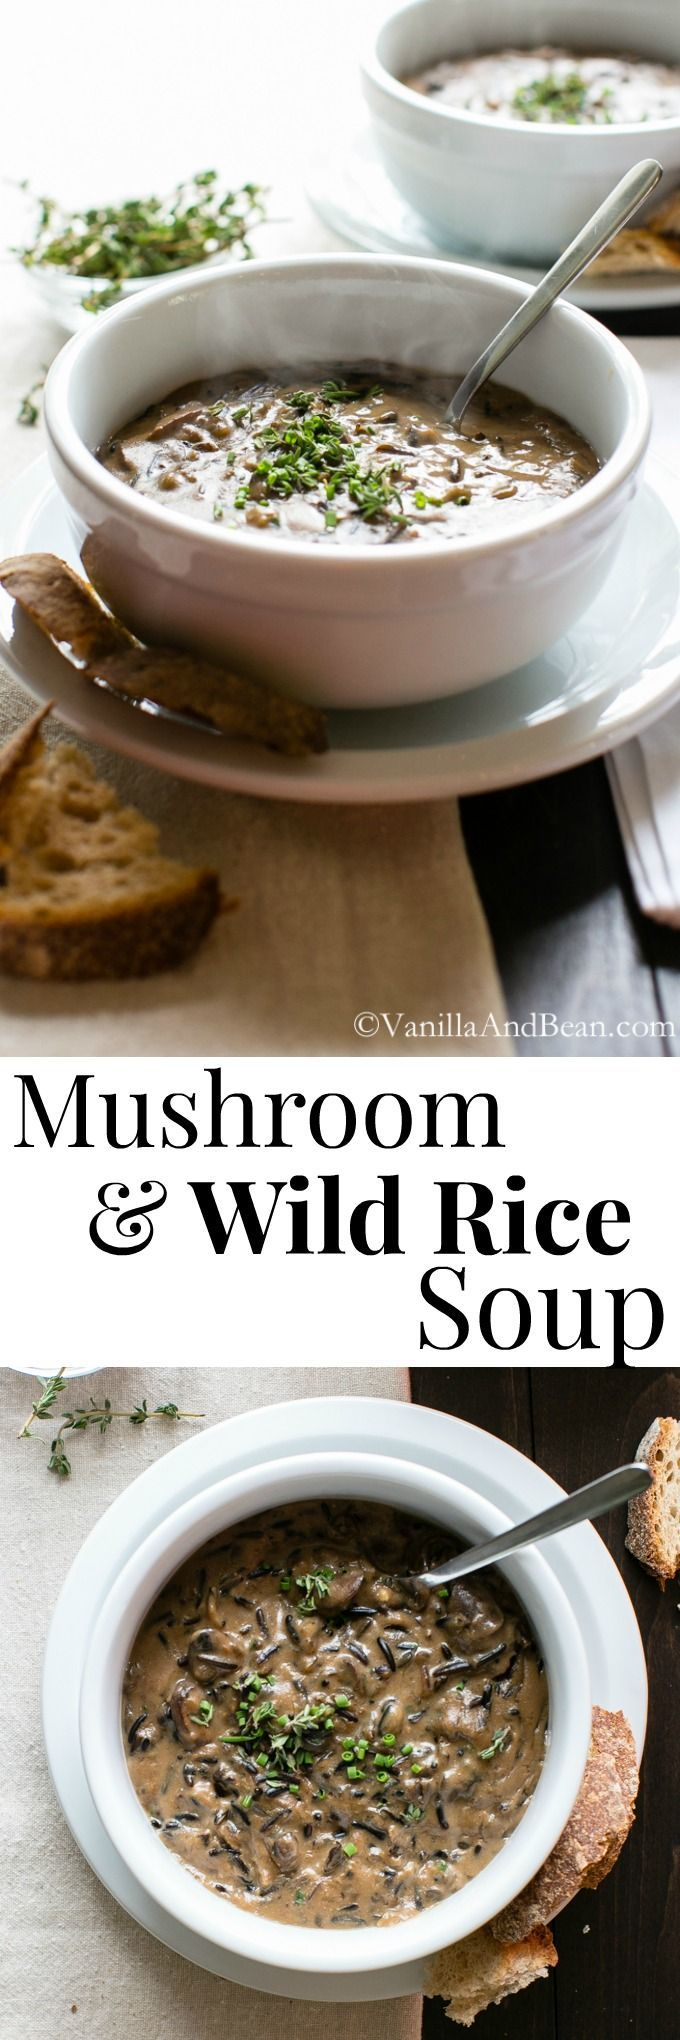 Creamy Mushroom and Wild Rice Soup that gets its creaminess from cashew nuts! An easy weeknight meal hat can double as a delicious lunch. Add chicken of you like or let it be a meatless meal. Yum! | Vegan | Vanilla And Bean